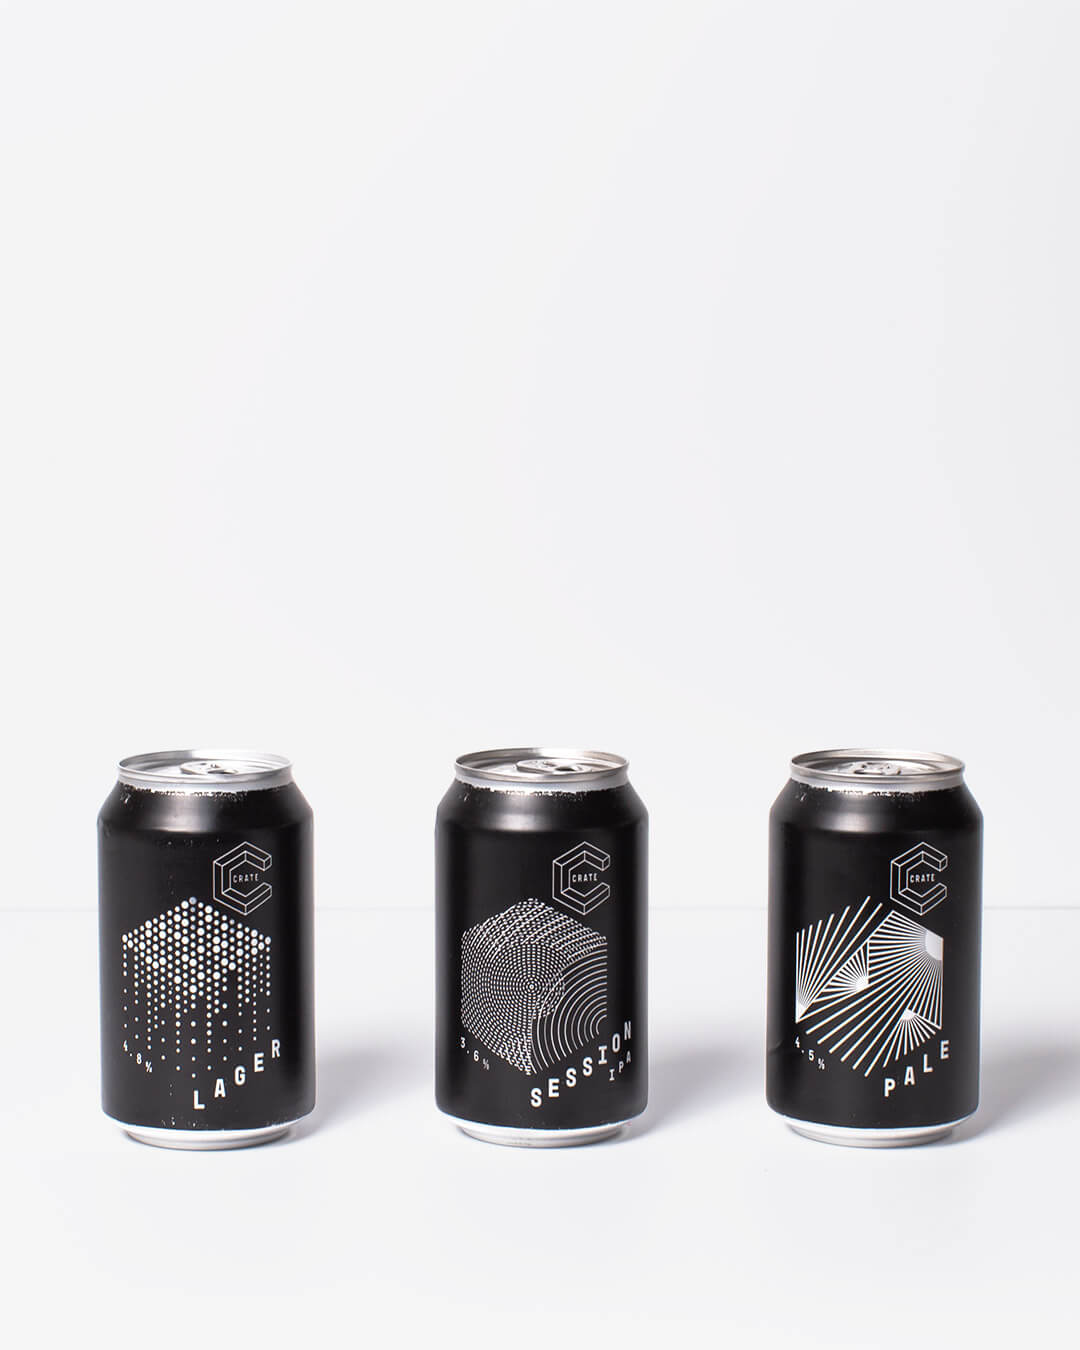 Crate Brewery Lager, IPA & Pale Ale cans